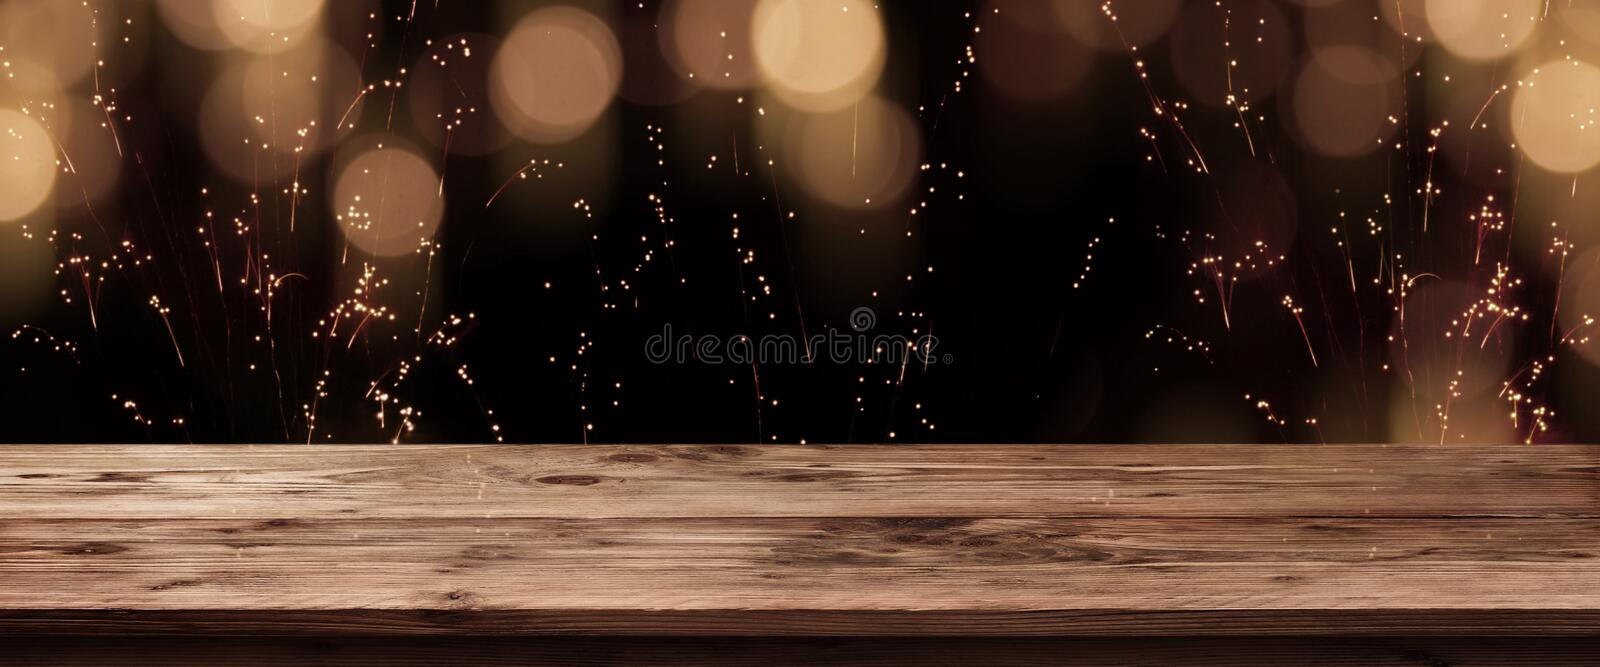 Festive golden bokeh with wooden table royalty free stock photo